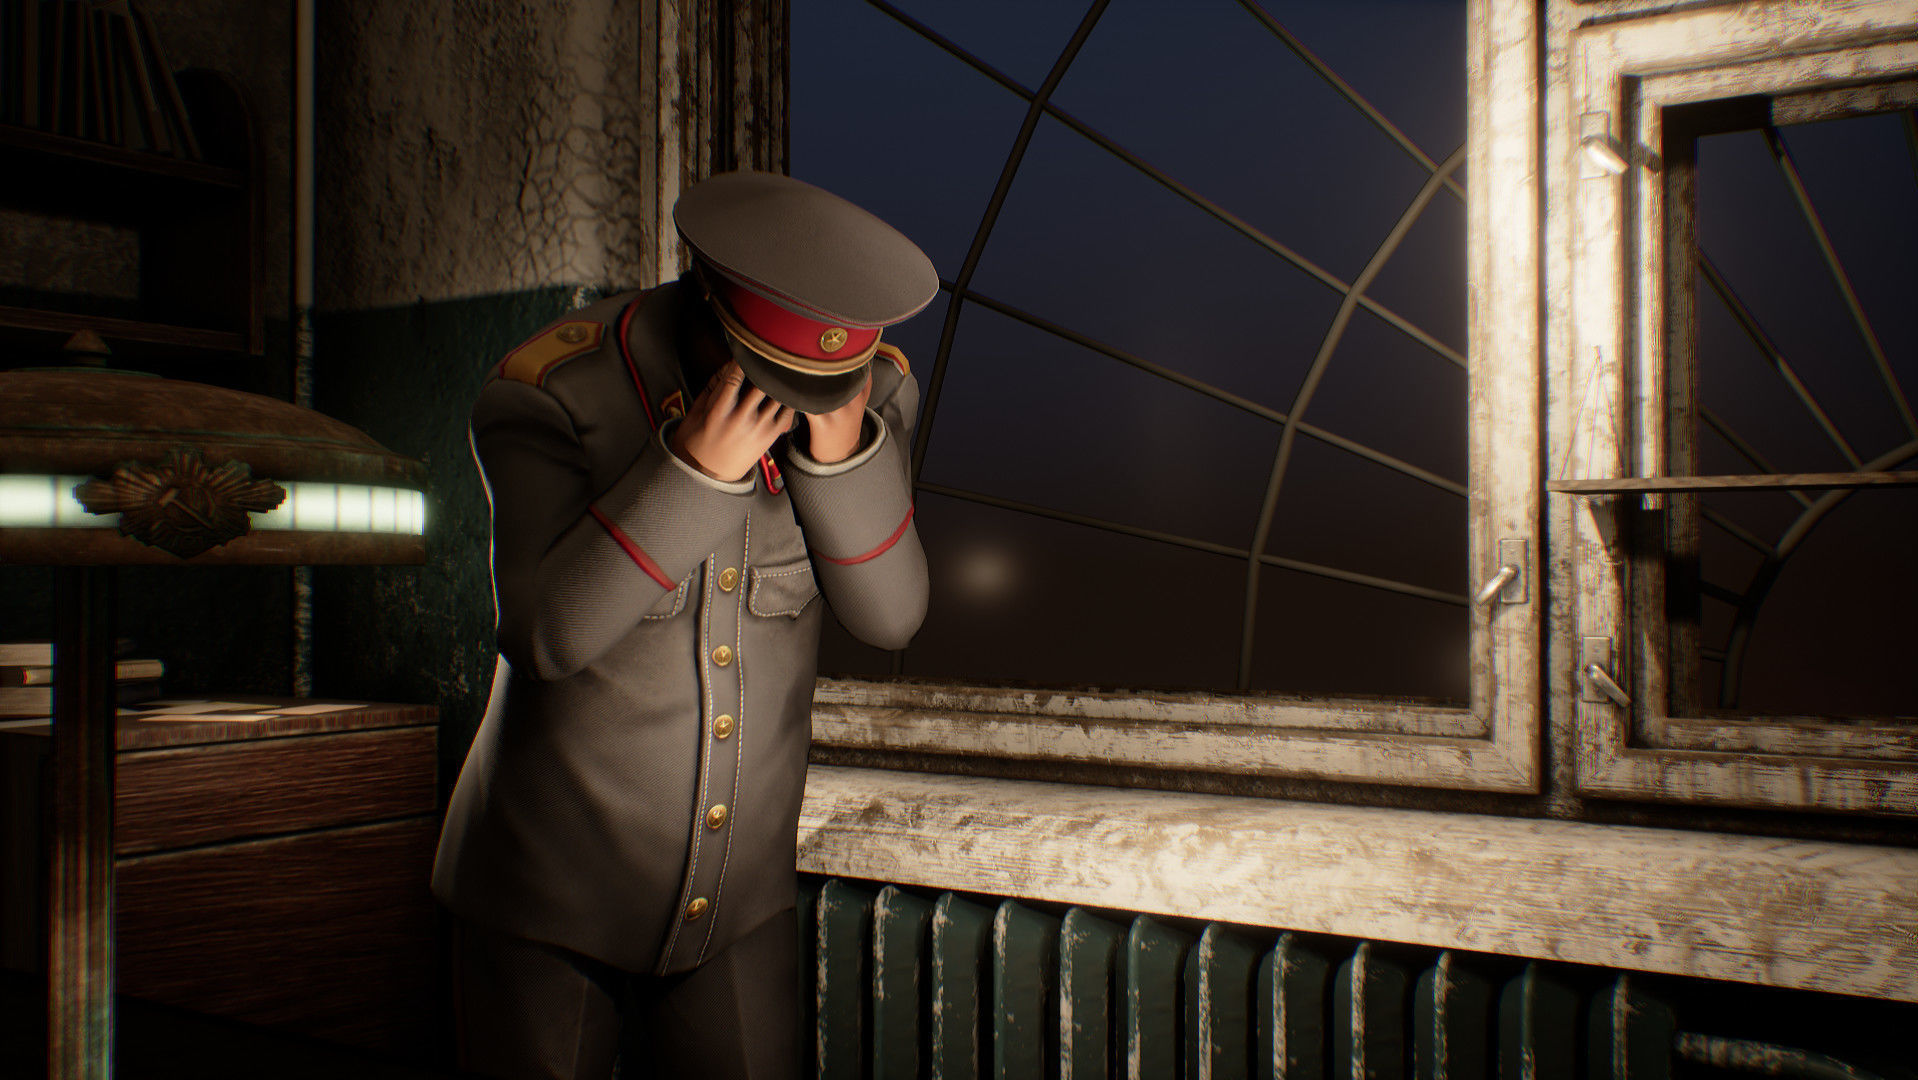 Captura de pantalla del videojuego 'Sex with Stalin'